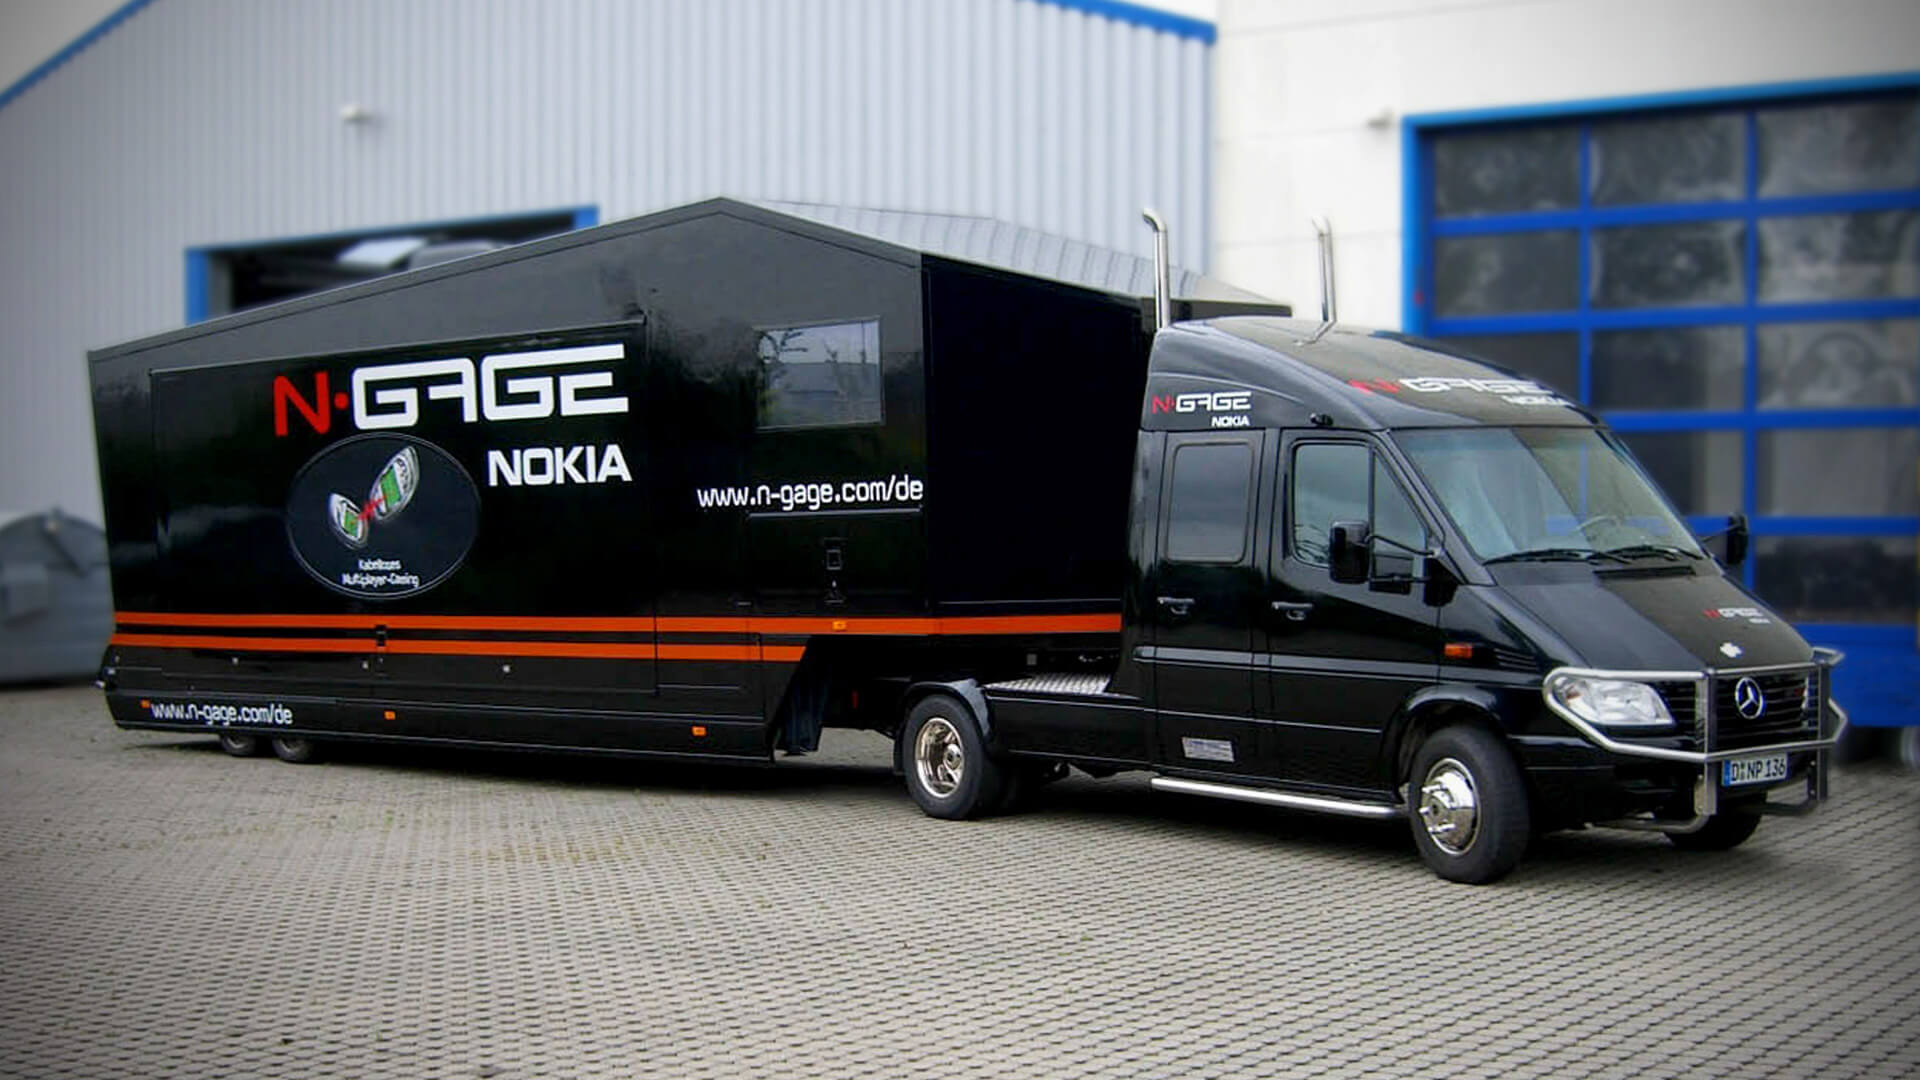 Promotion-Trailer Roadshow Werbemobil mobiler-Showroom Infomobil